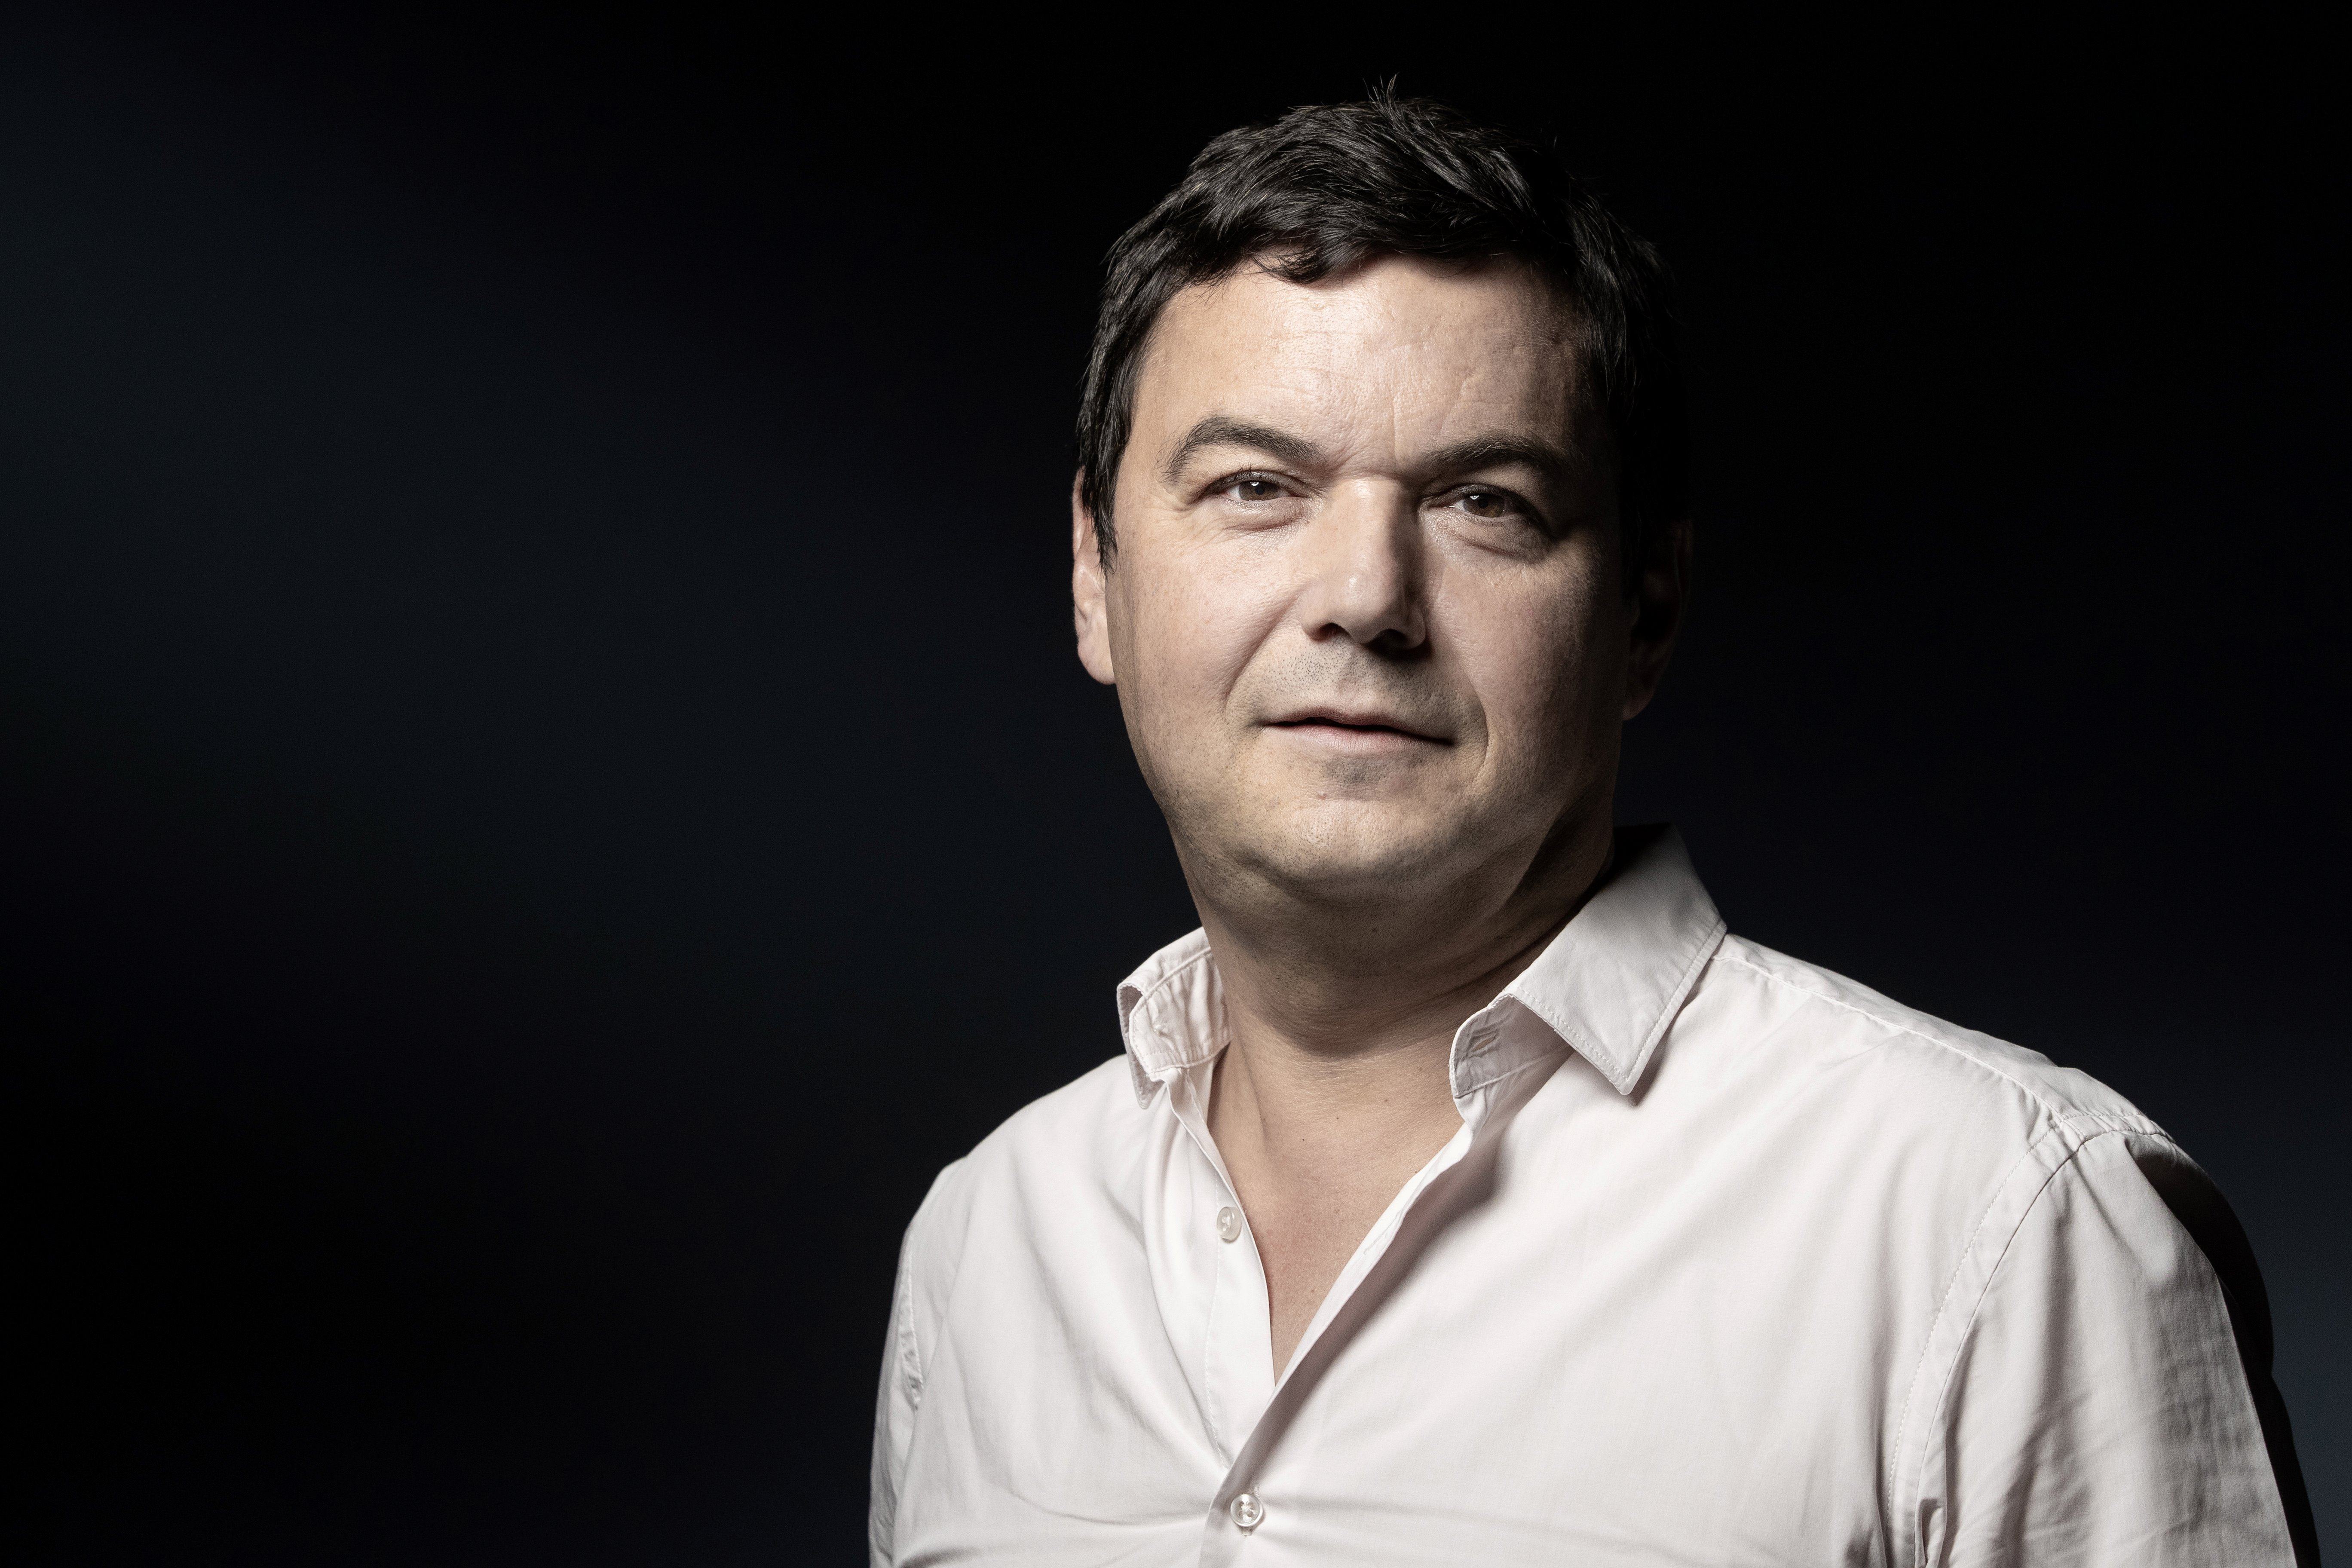 TOPSHOT - French economist Thomas Piketty poses during a photo session in Paris on September 10, 2019. (Photo by JOEL SAGET / AFP) (Photo credit should read JOEL SAGET/AFP/Getty Images)